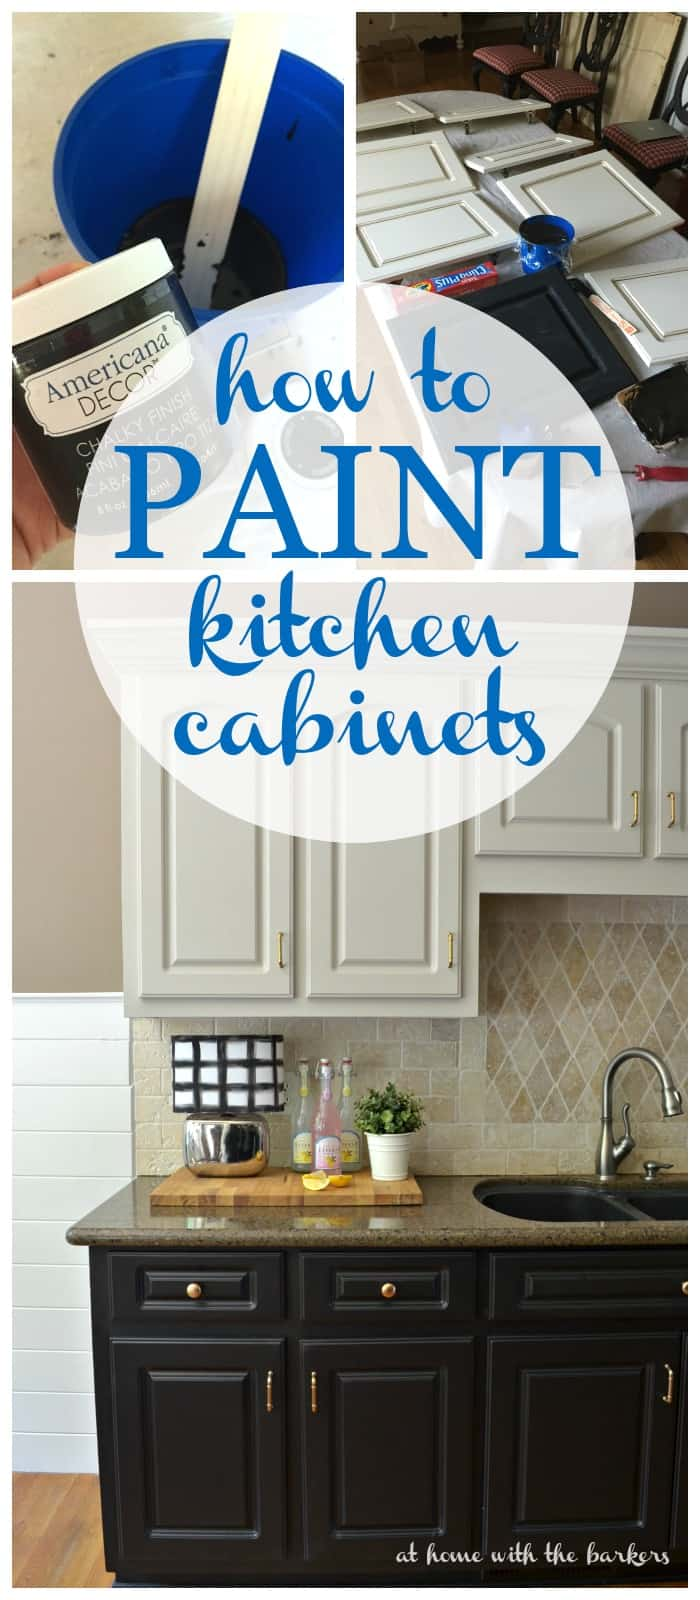 Americana Decor Chalky Finish How To Paint Kitchen Cabinets At Home With The Barkers